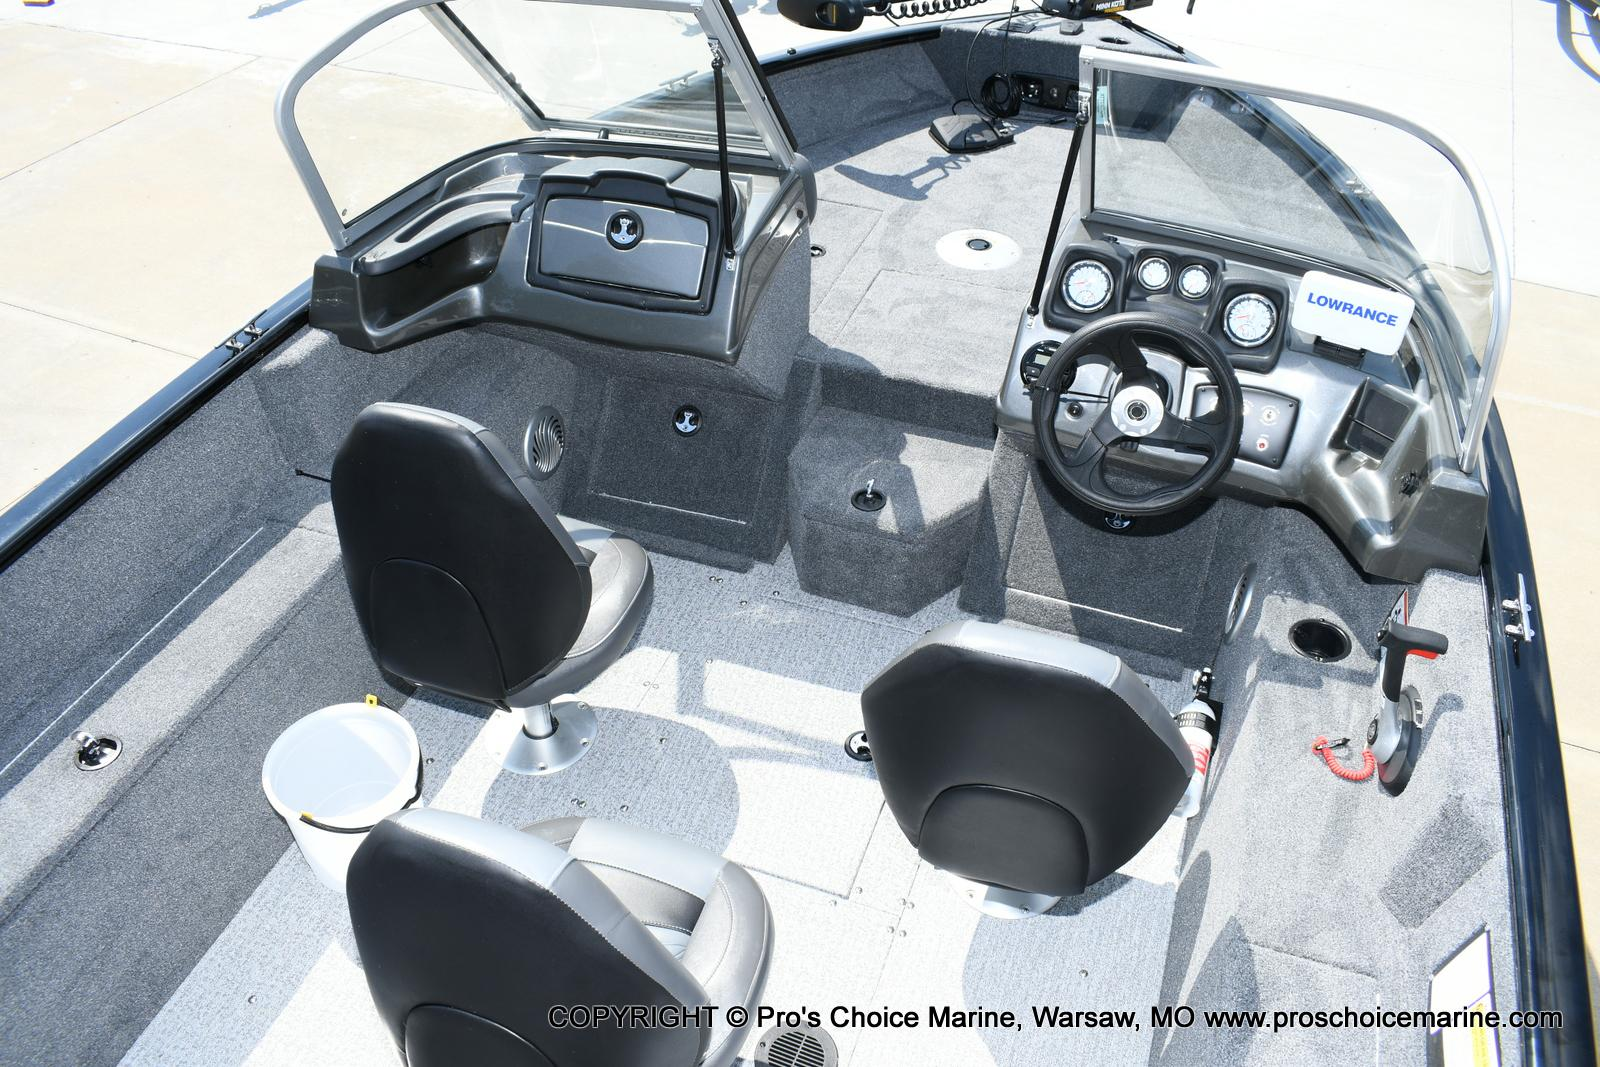 2020 Tracker Boats boat for sale, model of the boat is Pro Guide V-175 Combo & Image # 23 of 50